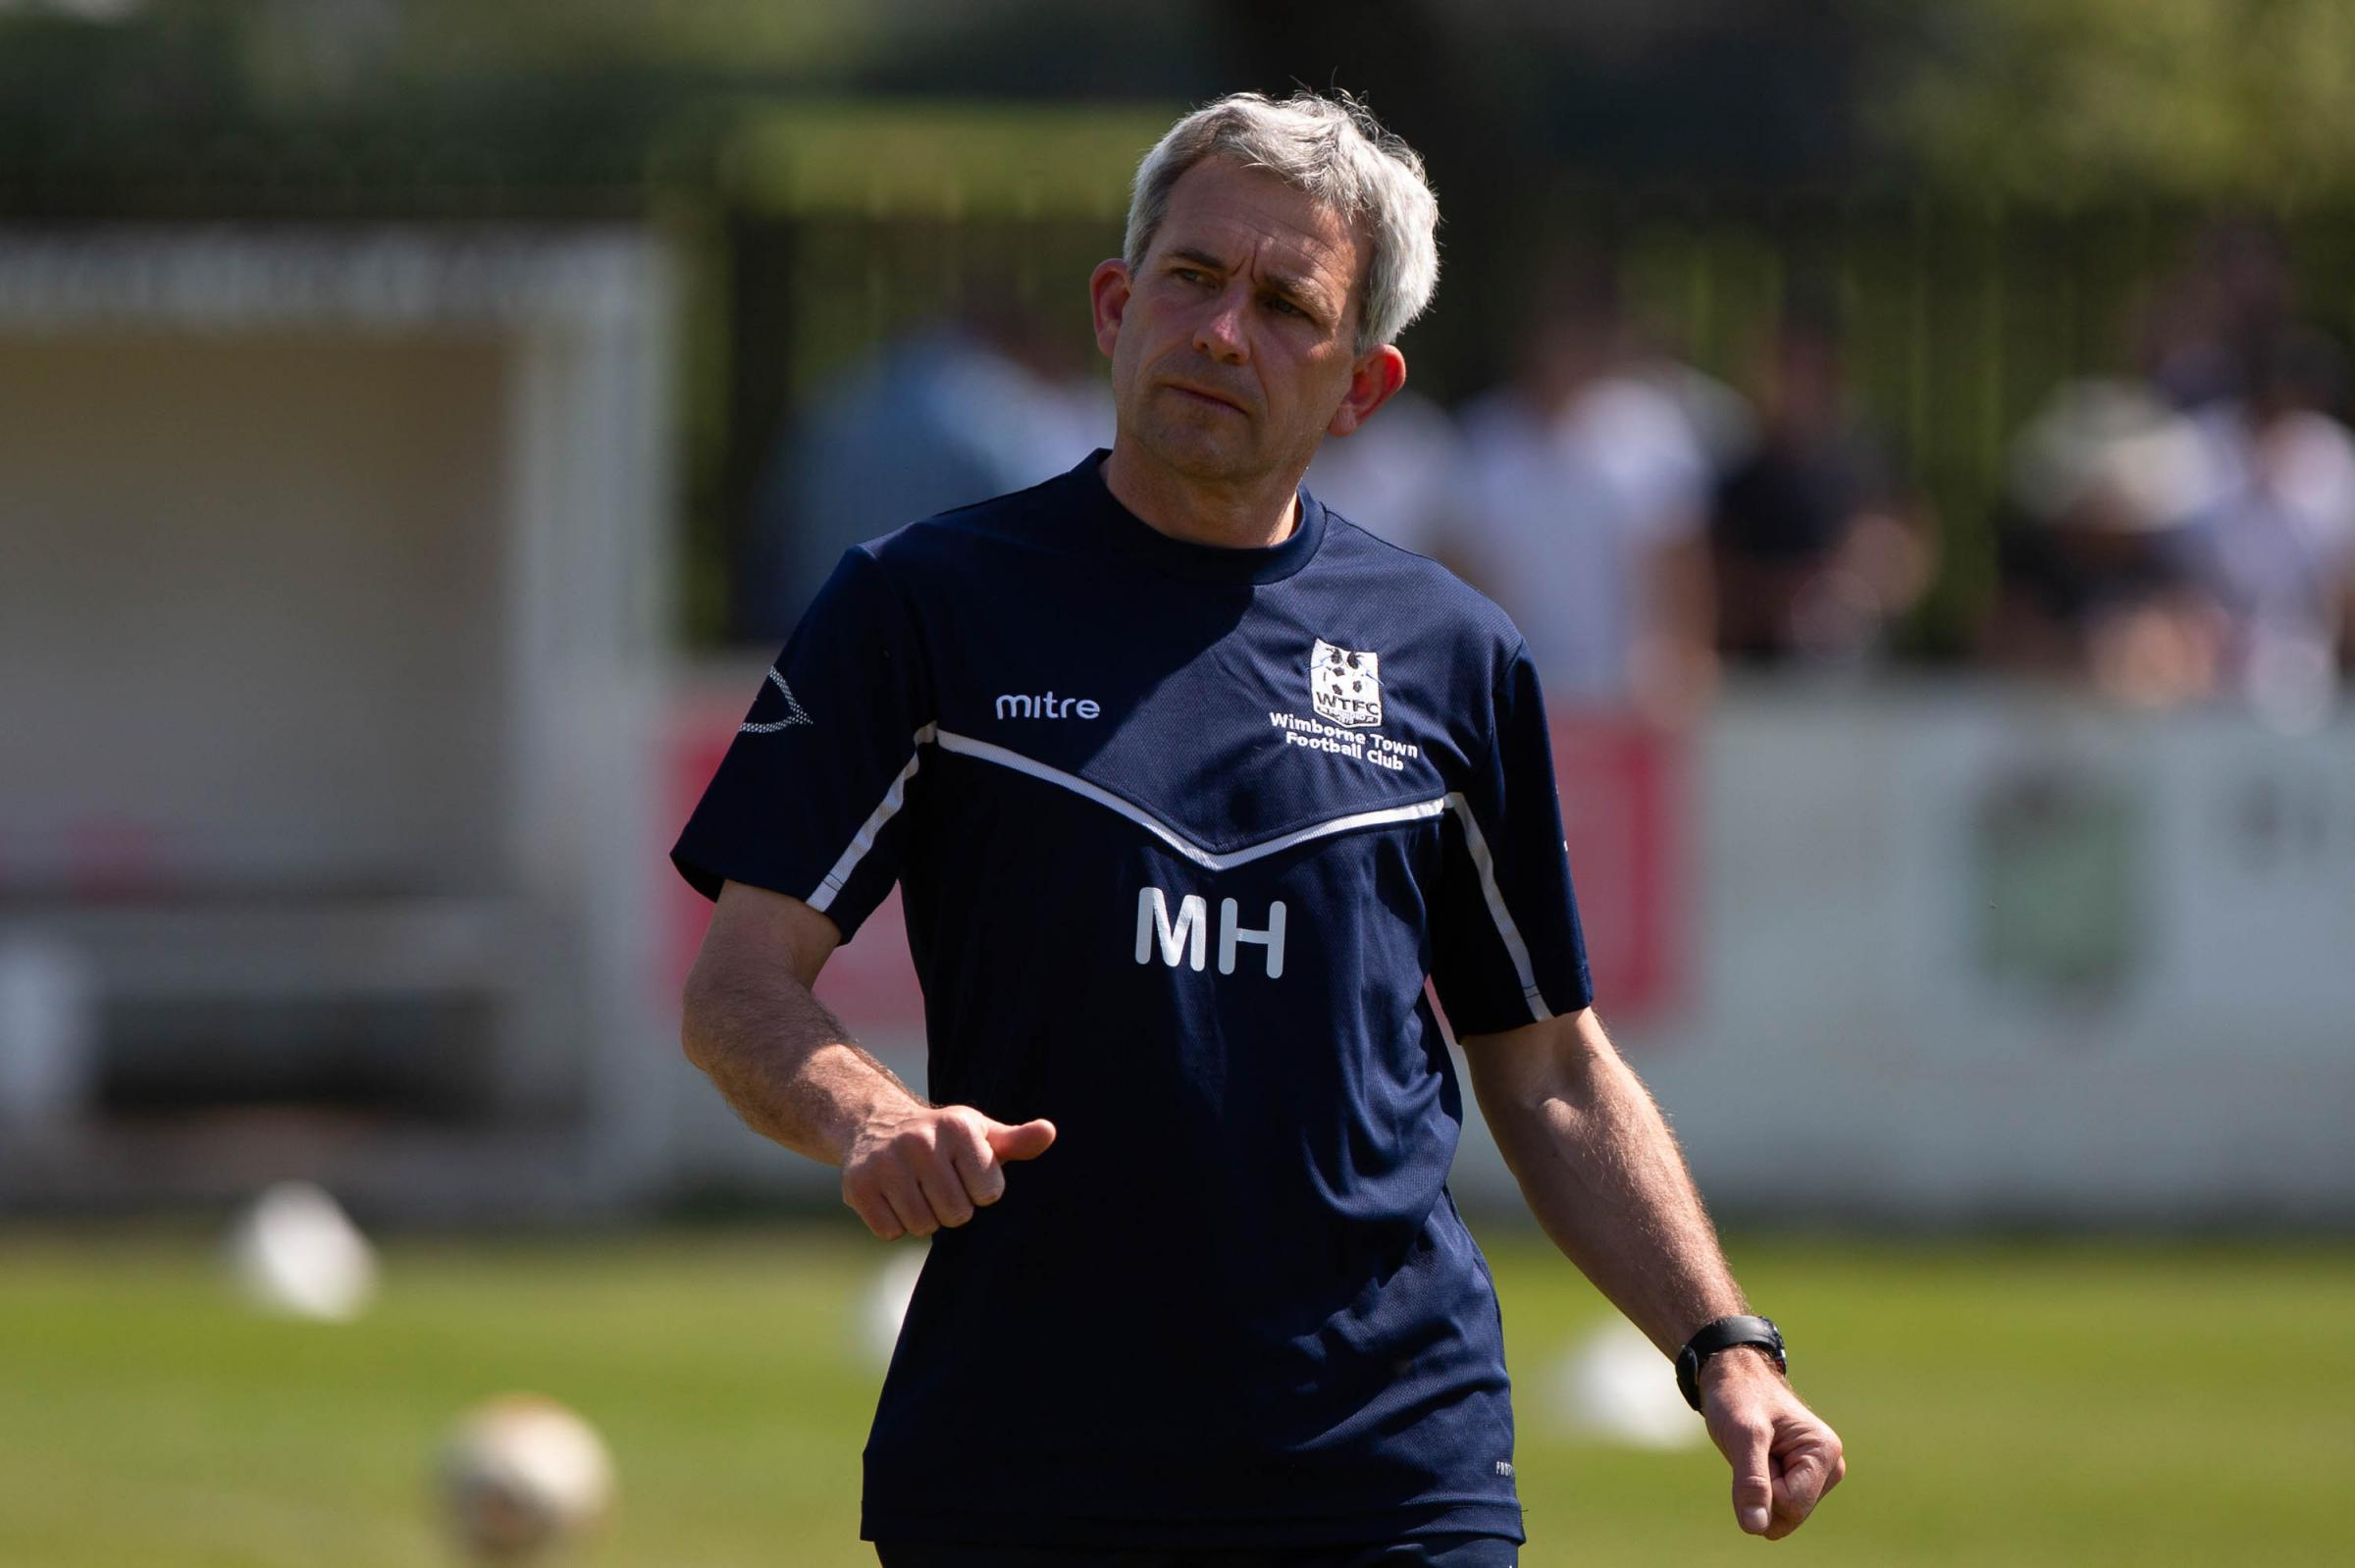 LOOKING TO RECRUIT: Wimborne Town manager Matty Holmes (Picture: Simon Carlton)